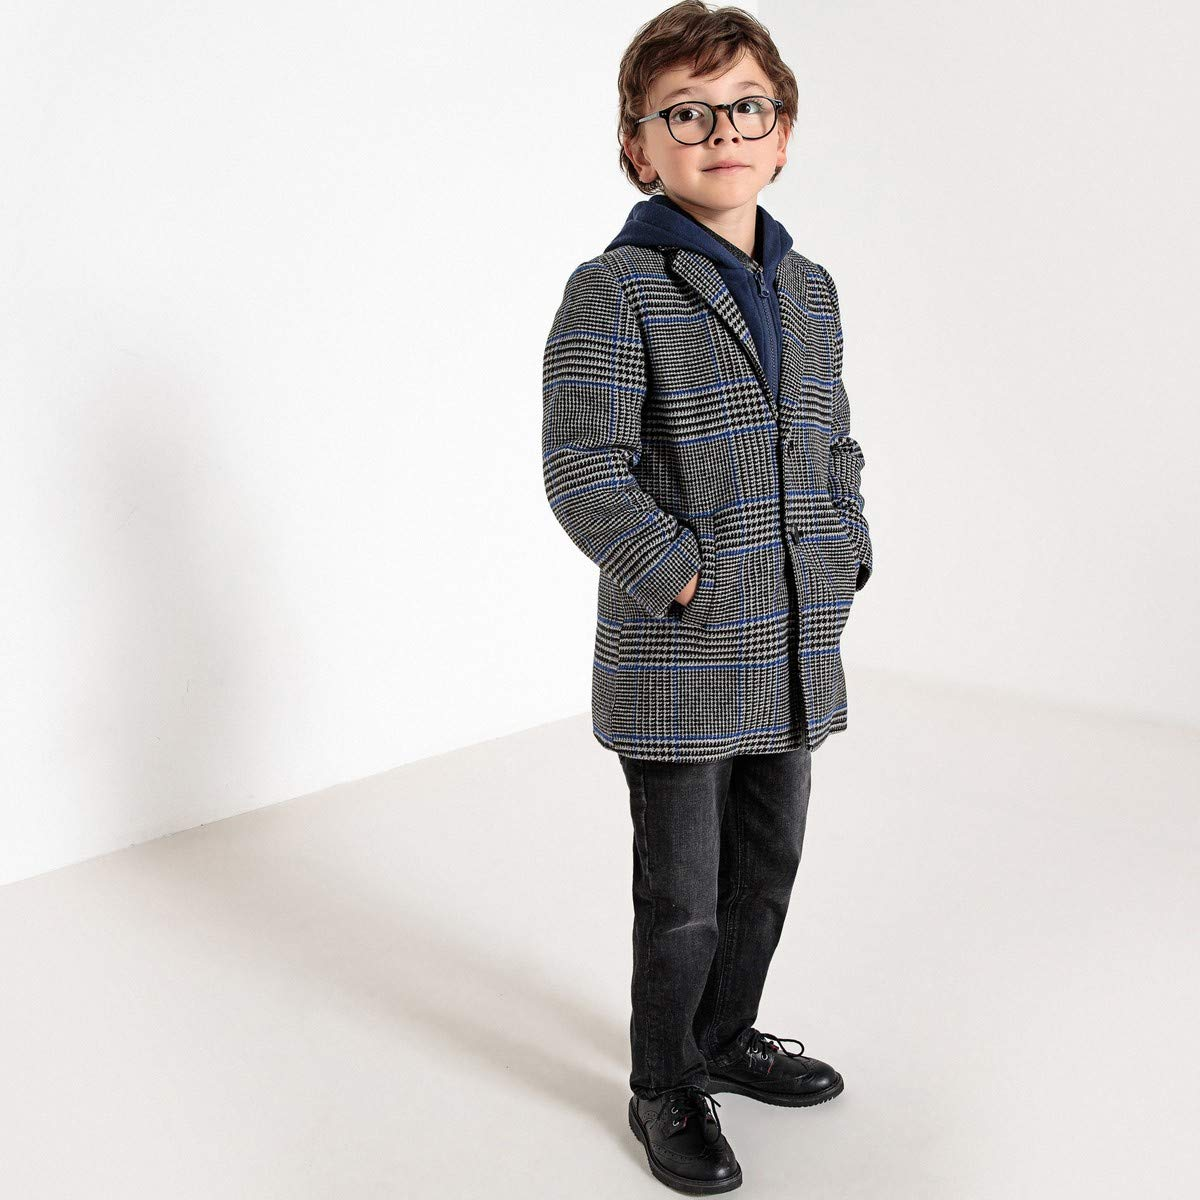 c21f49391 Amazon.com: La Redoute Collections Big Boys Hooded Checked Coat, 3-12 Years  Other Size 3 Years - 37 in.: Clothing